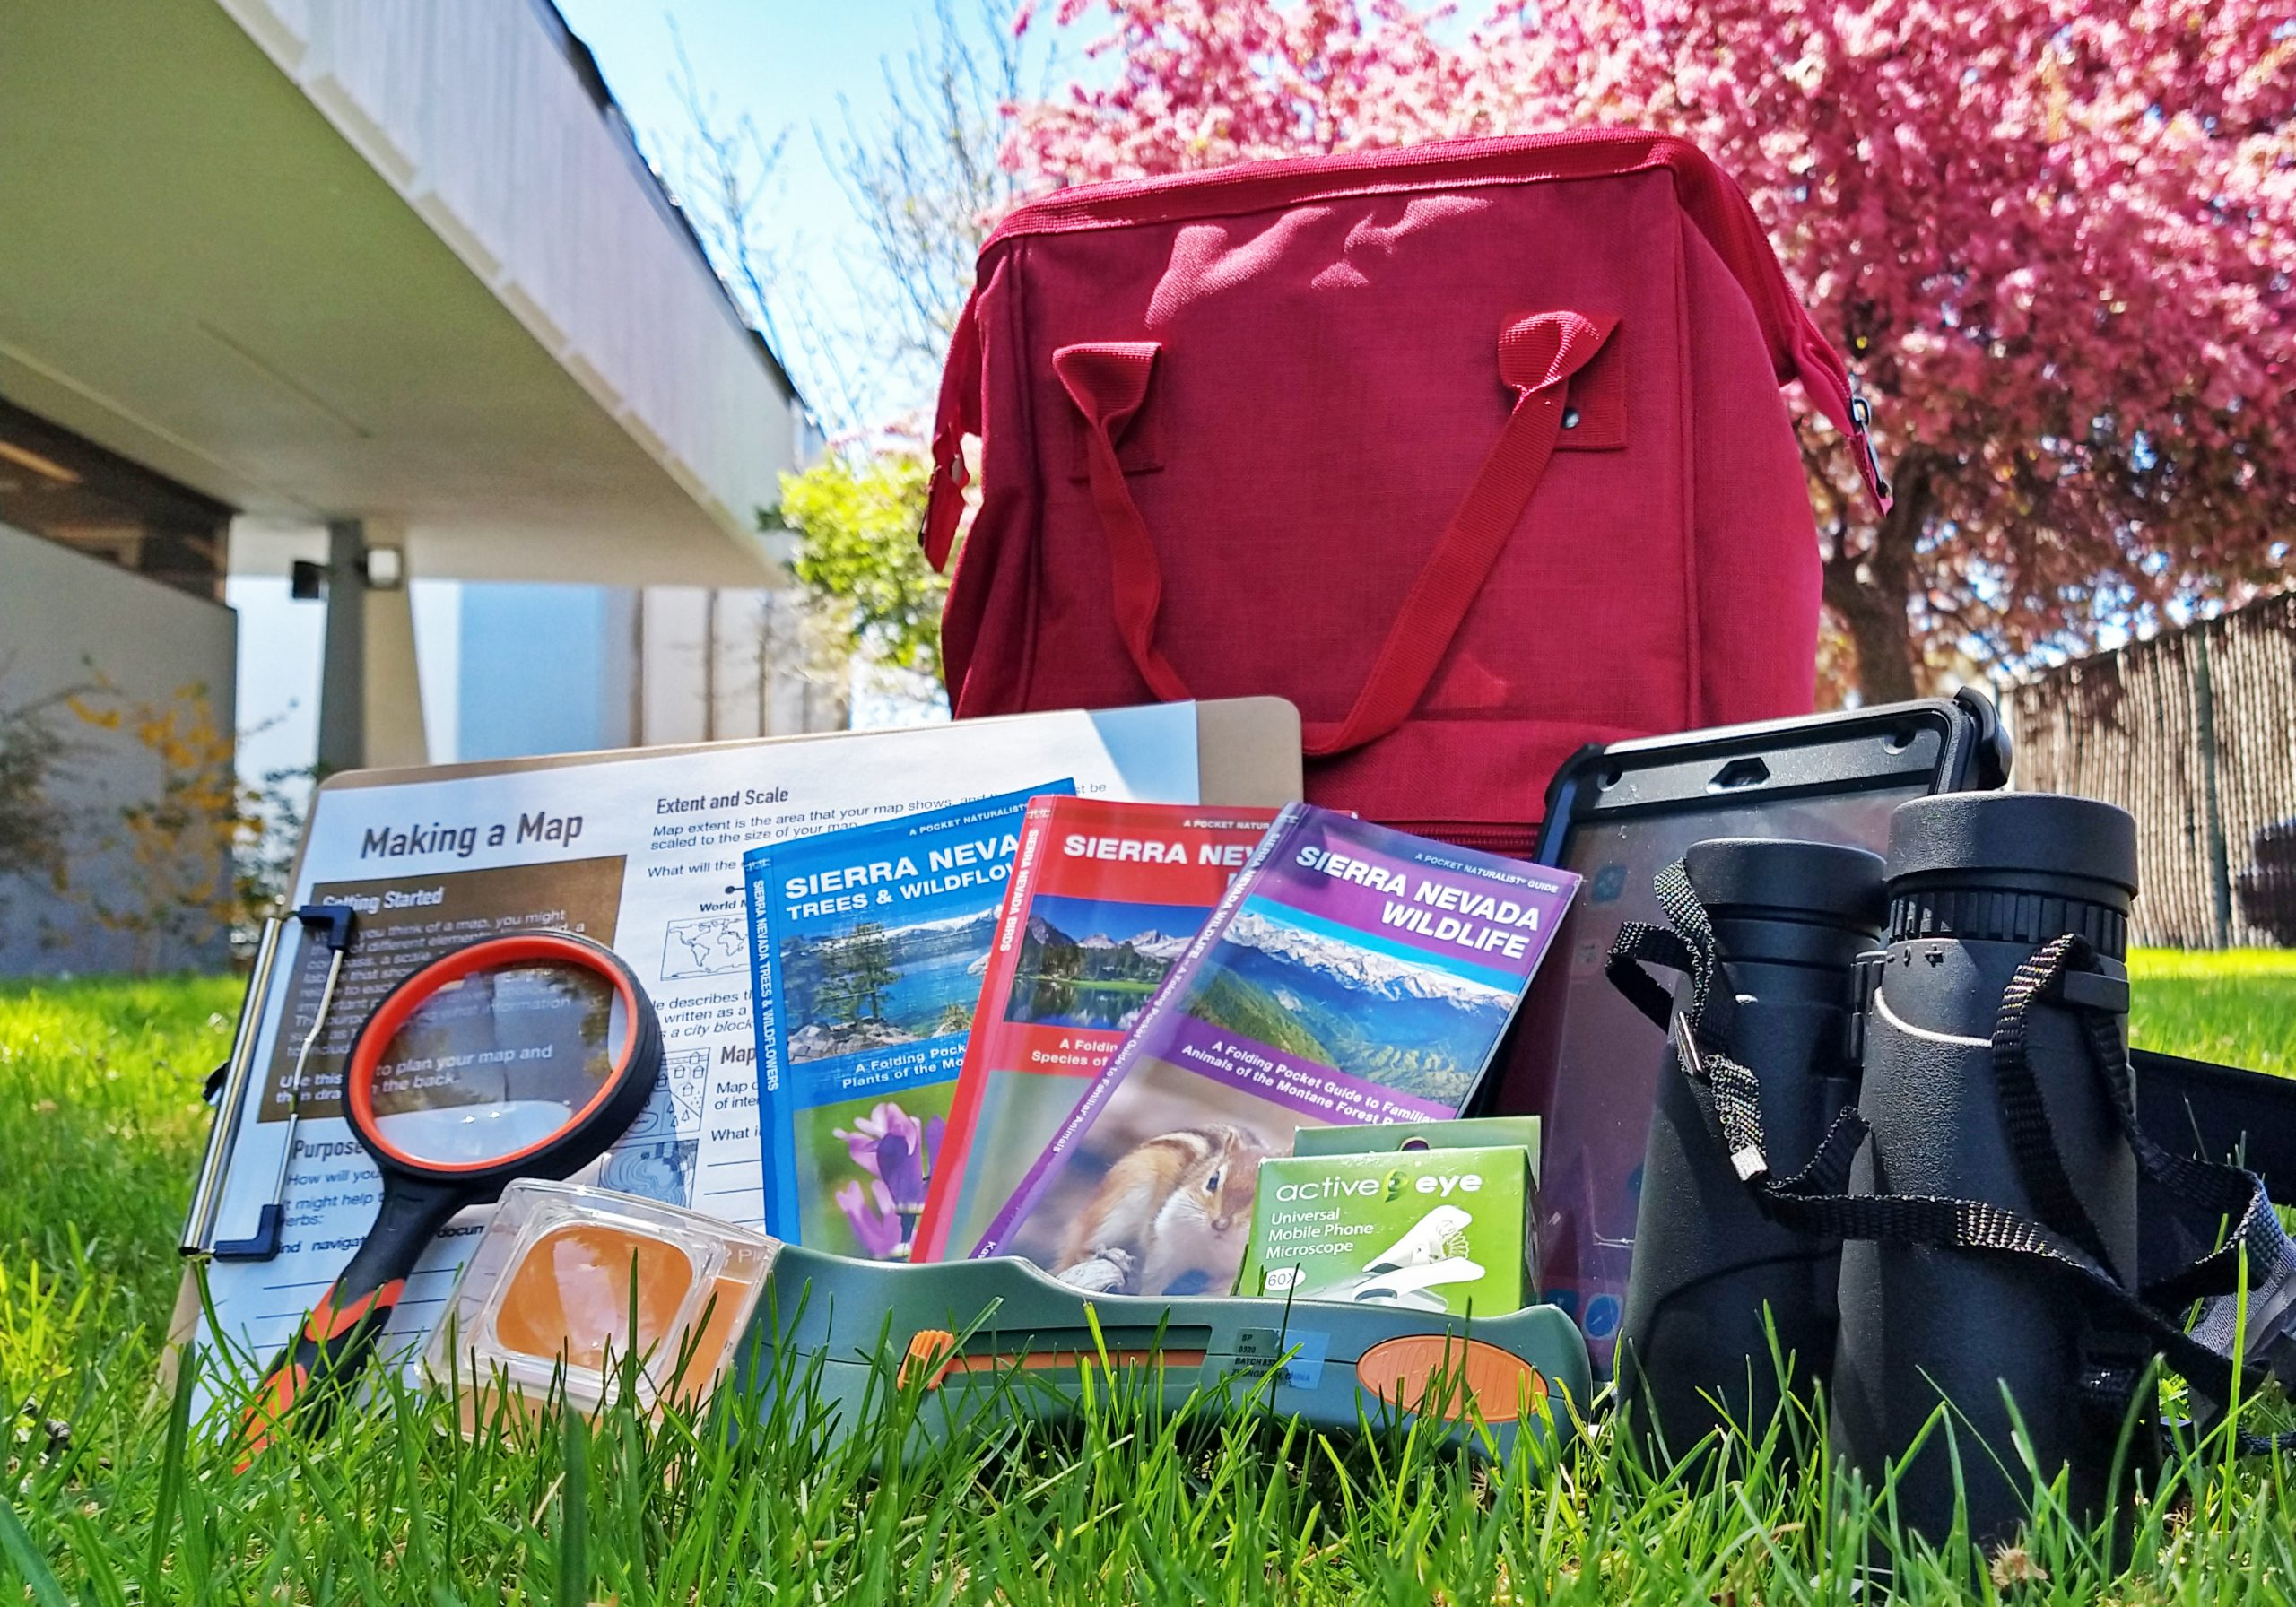 Community Science Backpacks are available for checkout and use in the library's garden. The backpacks include tools for observing and recording nature in the garden